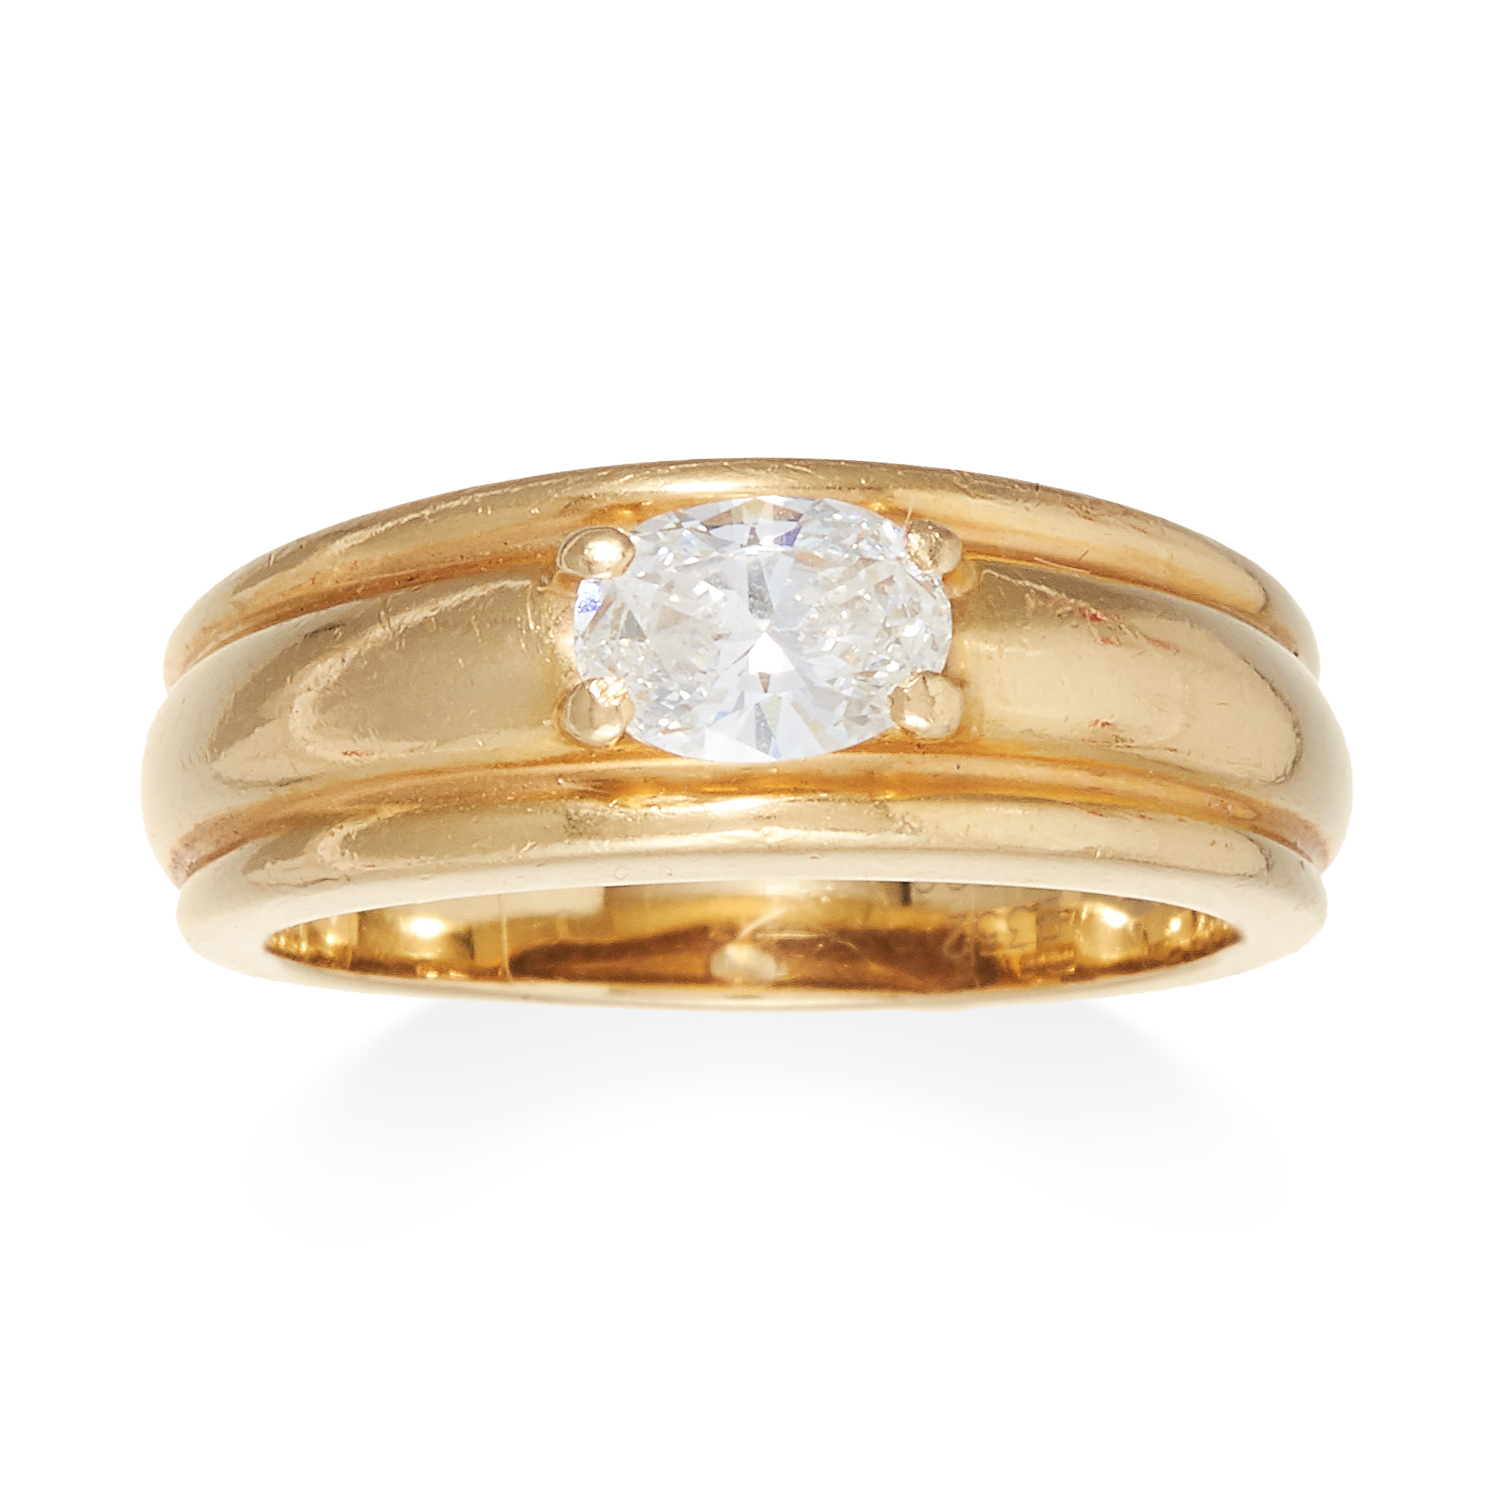 A DIAMOND RING, BOUCHERON in 18ct yellow gold, jewelled with an oval cut diamond of approximately